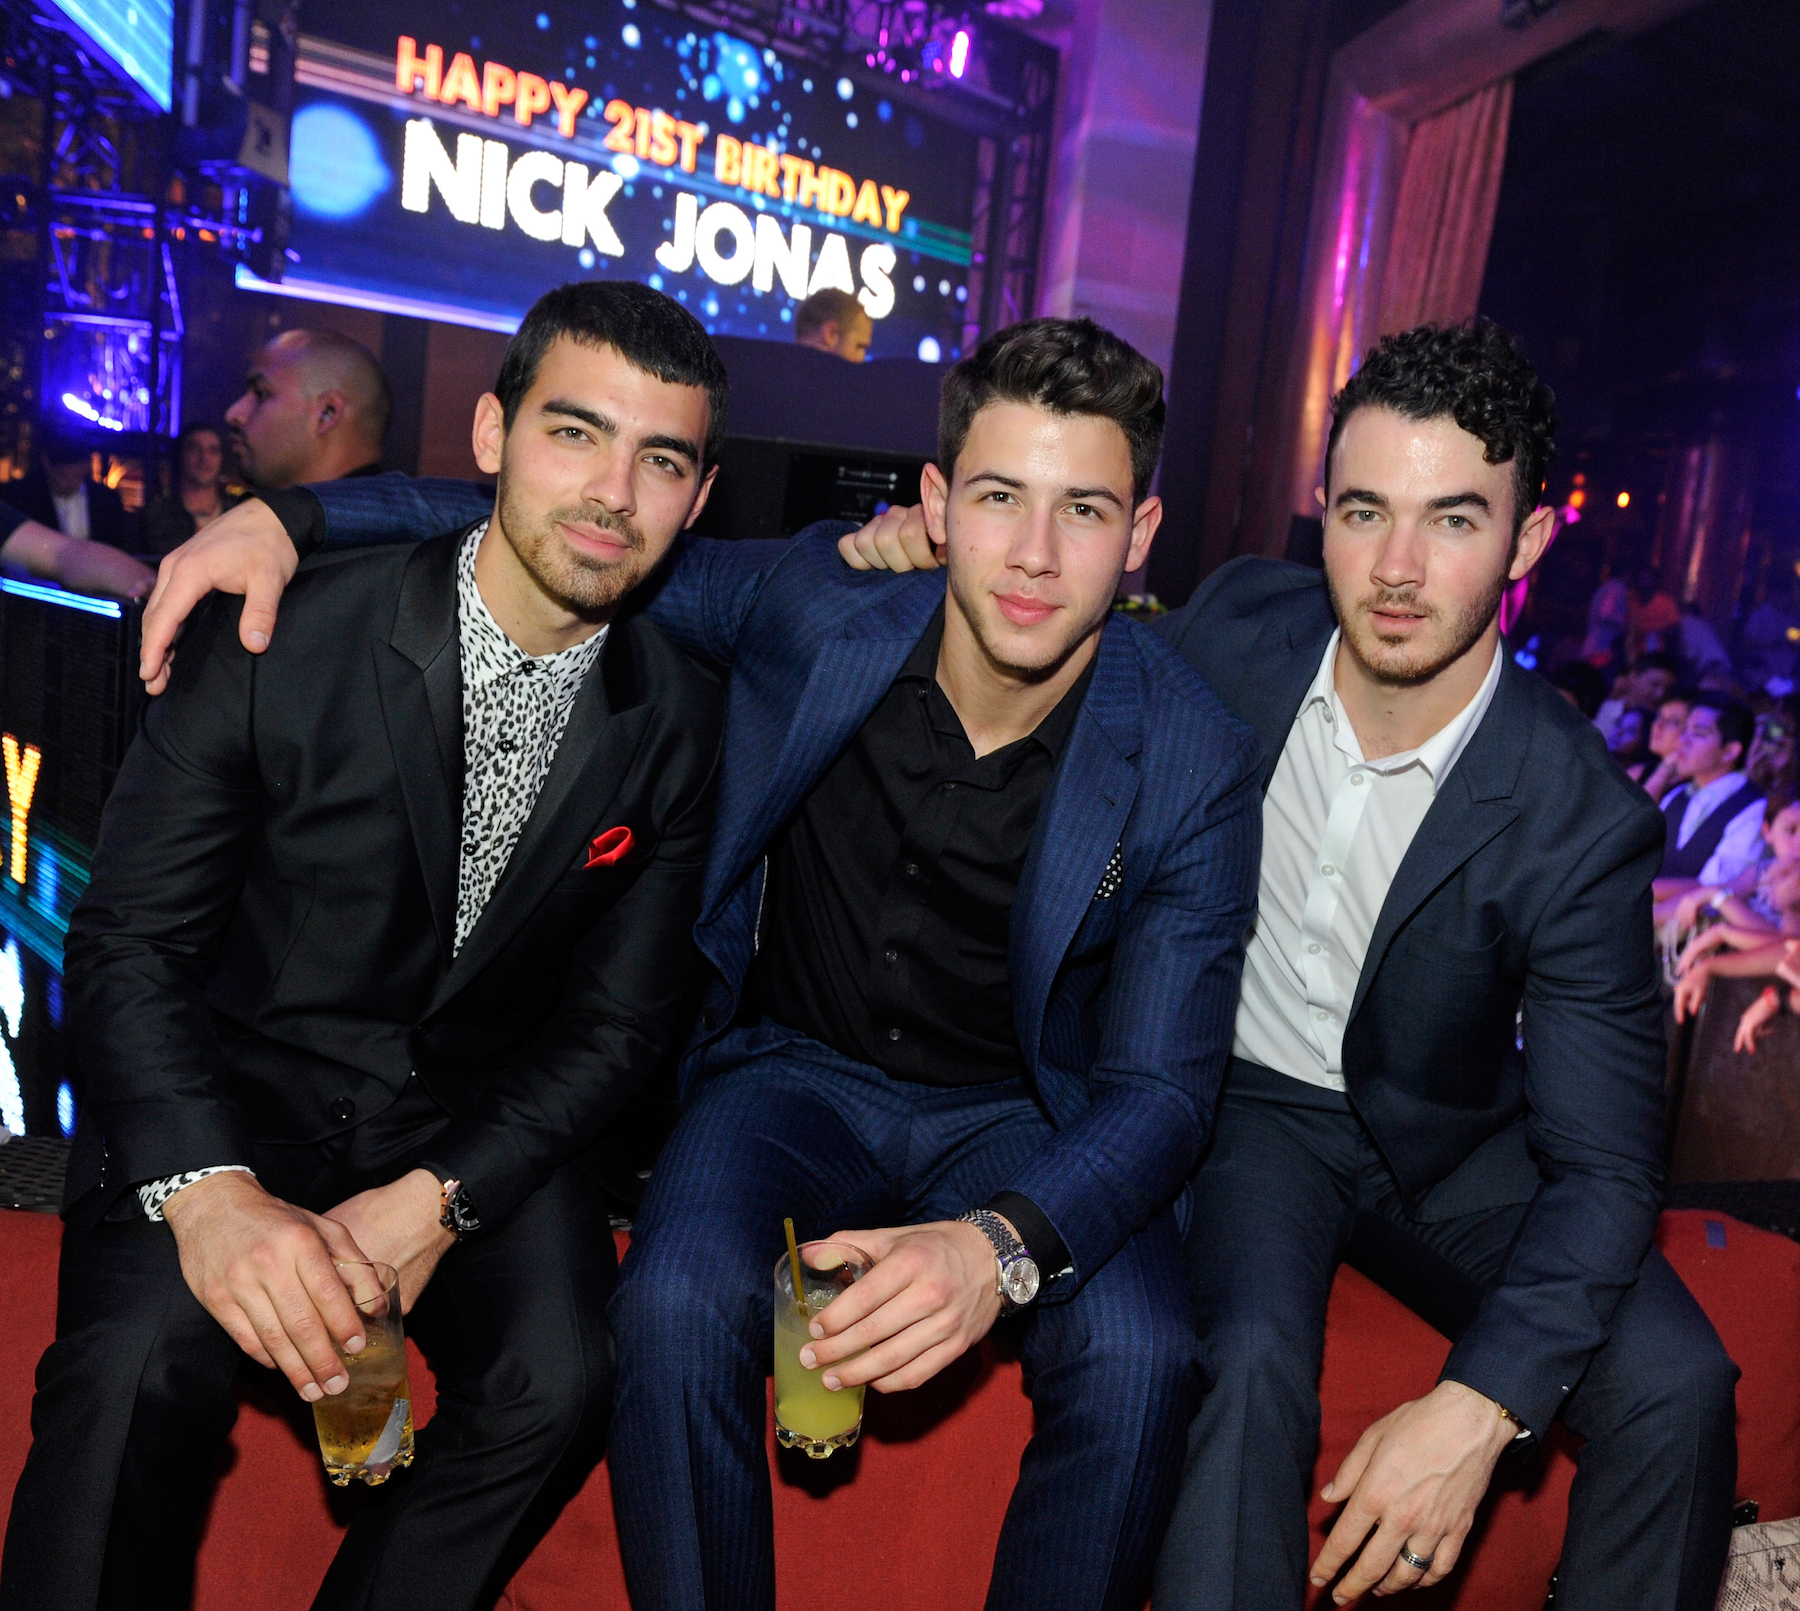 Kevin Jonas: biography, creativity, personal life and interesting facts 49